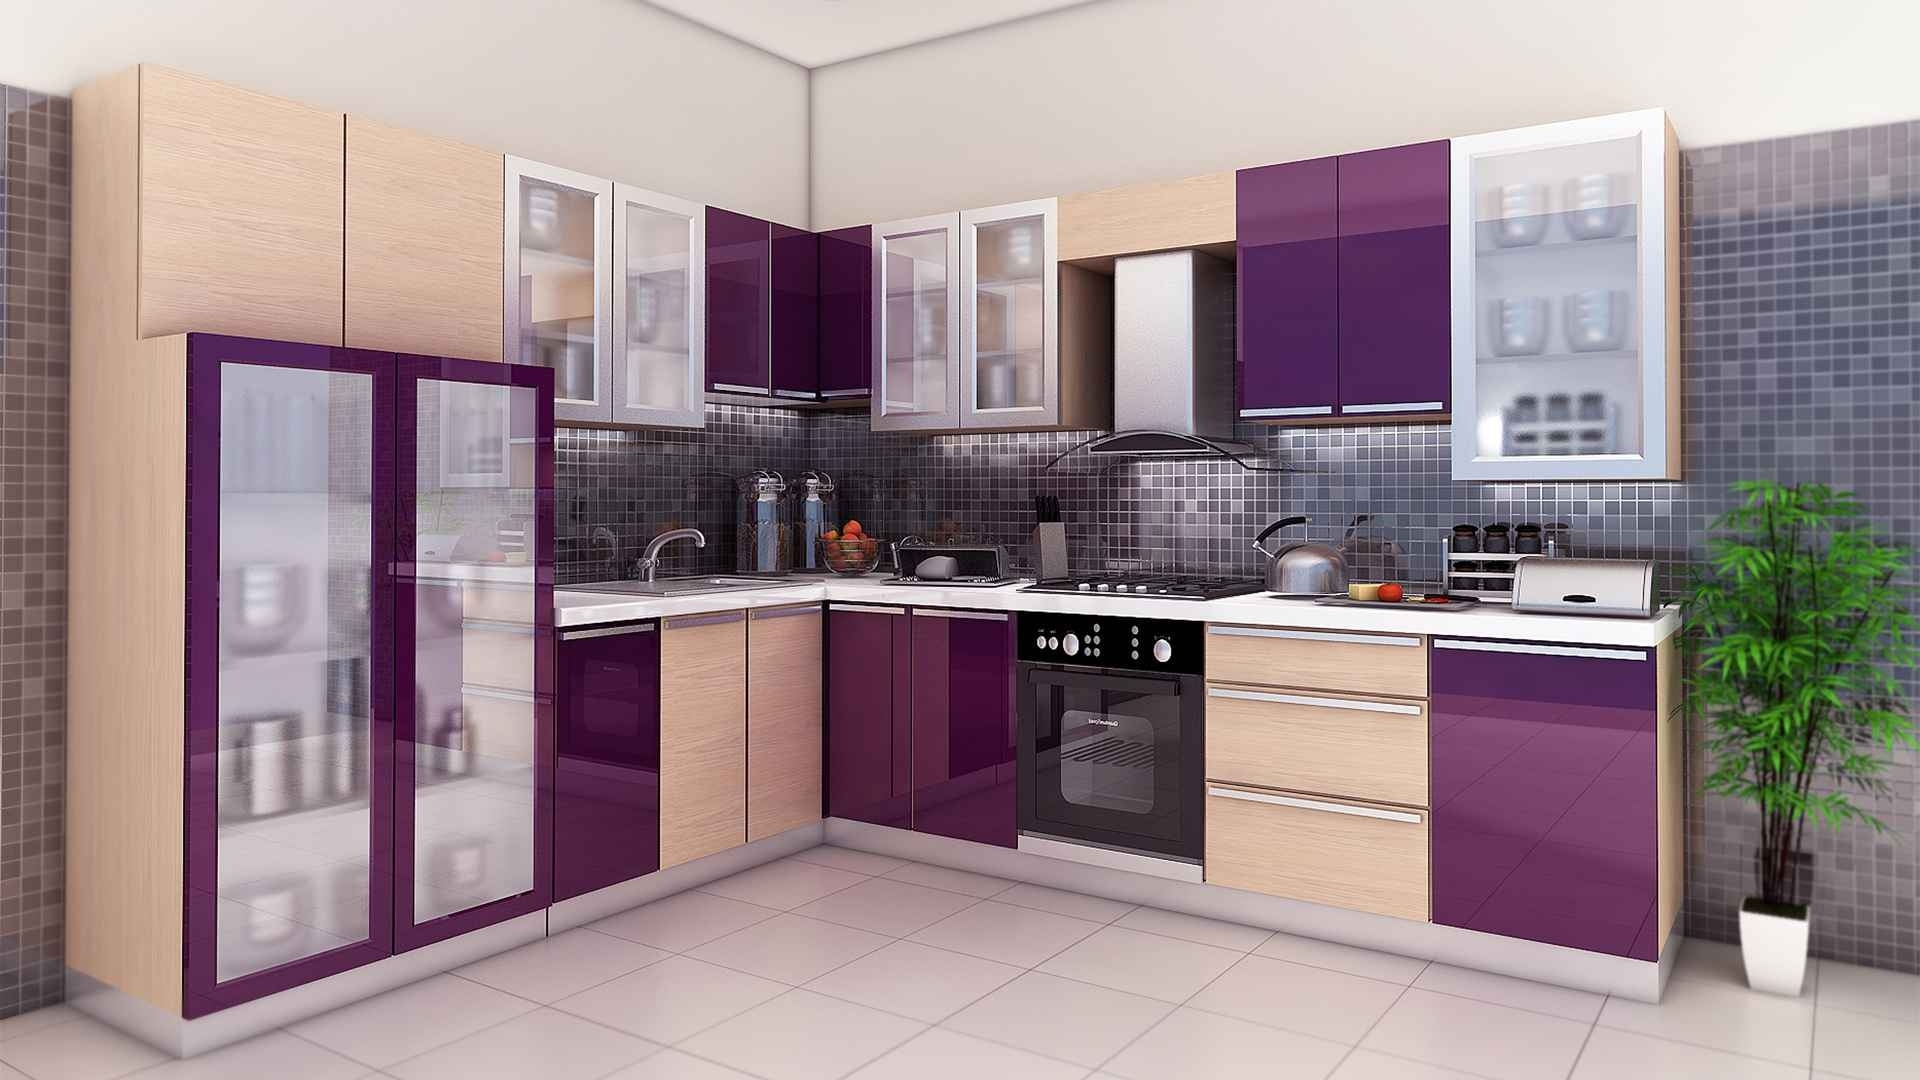 Indian Kitchen Concept in Lucknow ,India from Mangalam Corporation